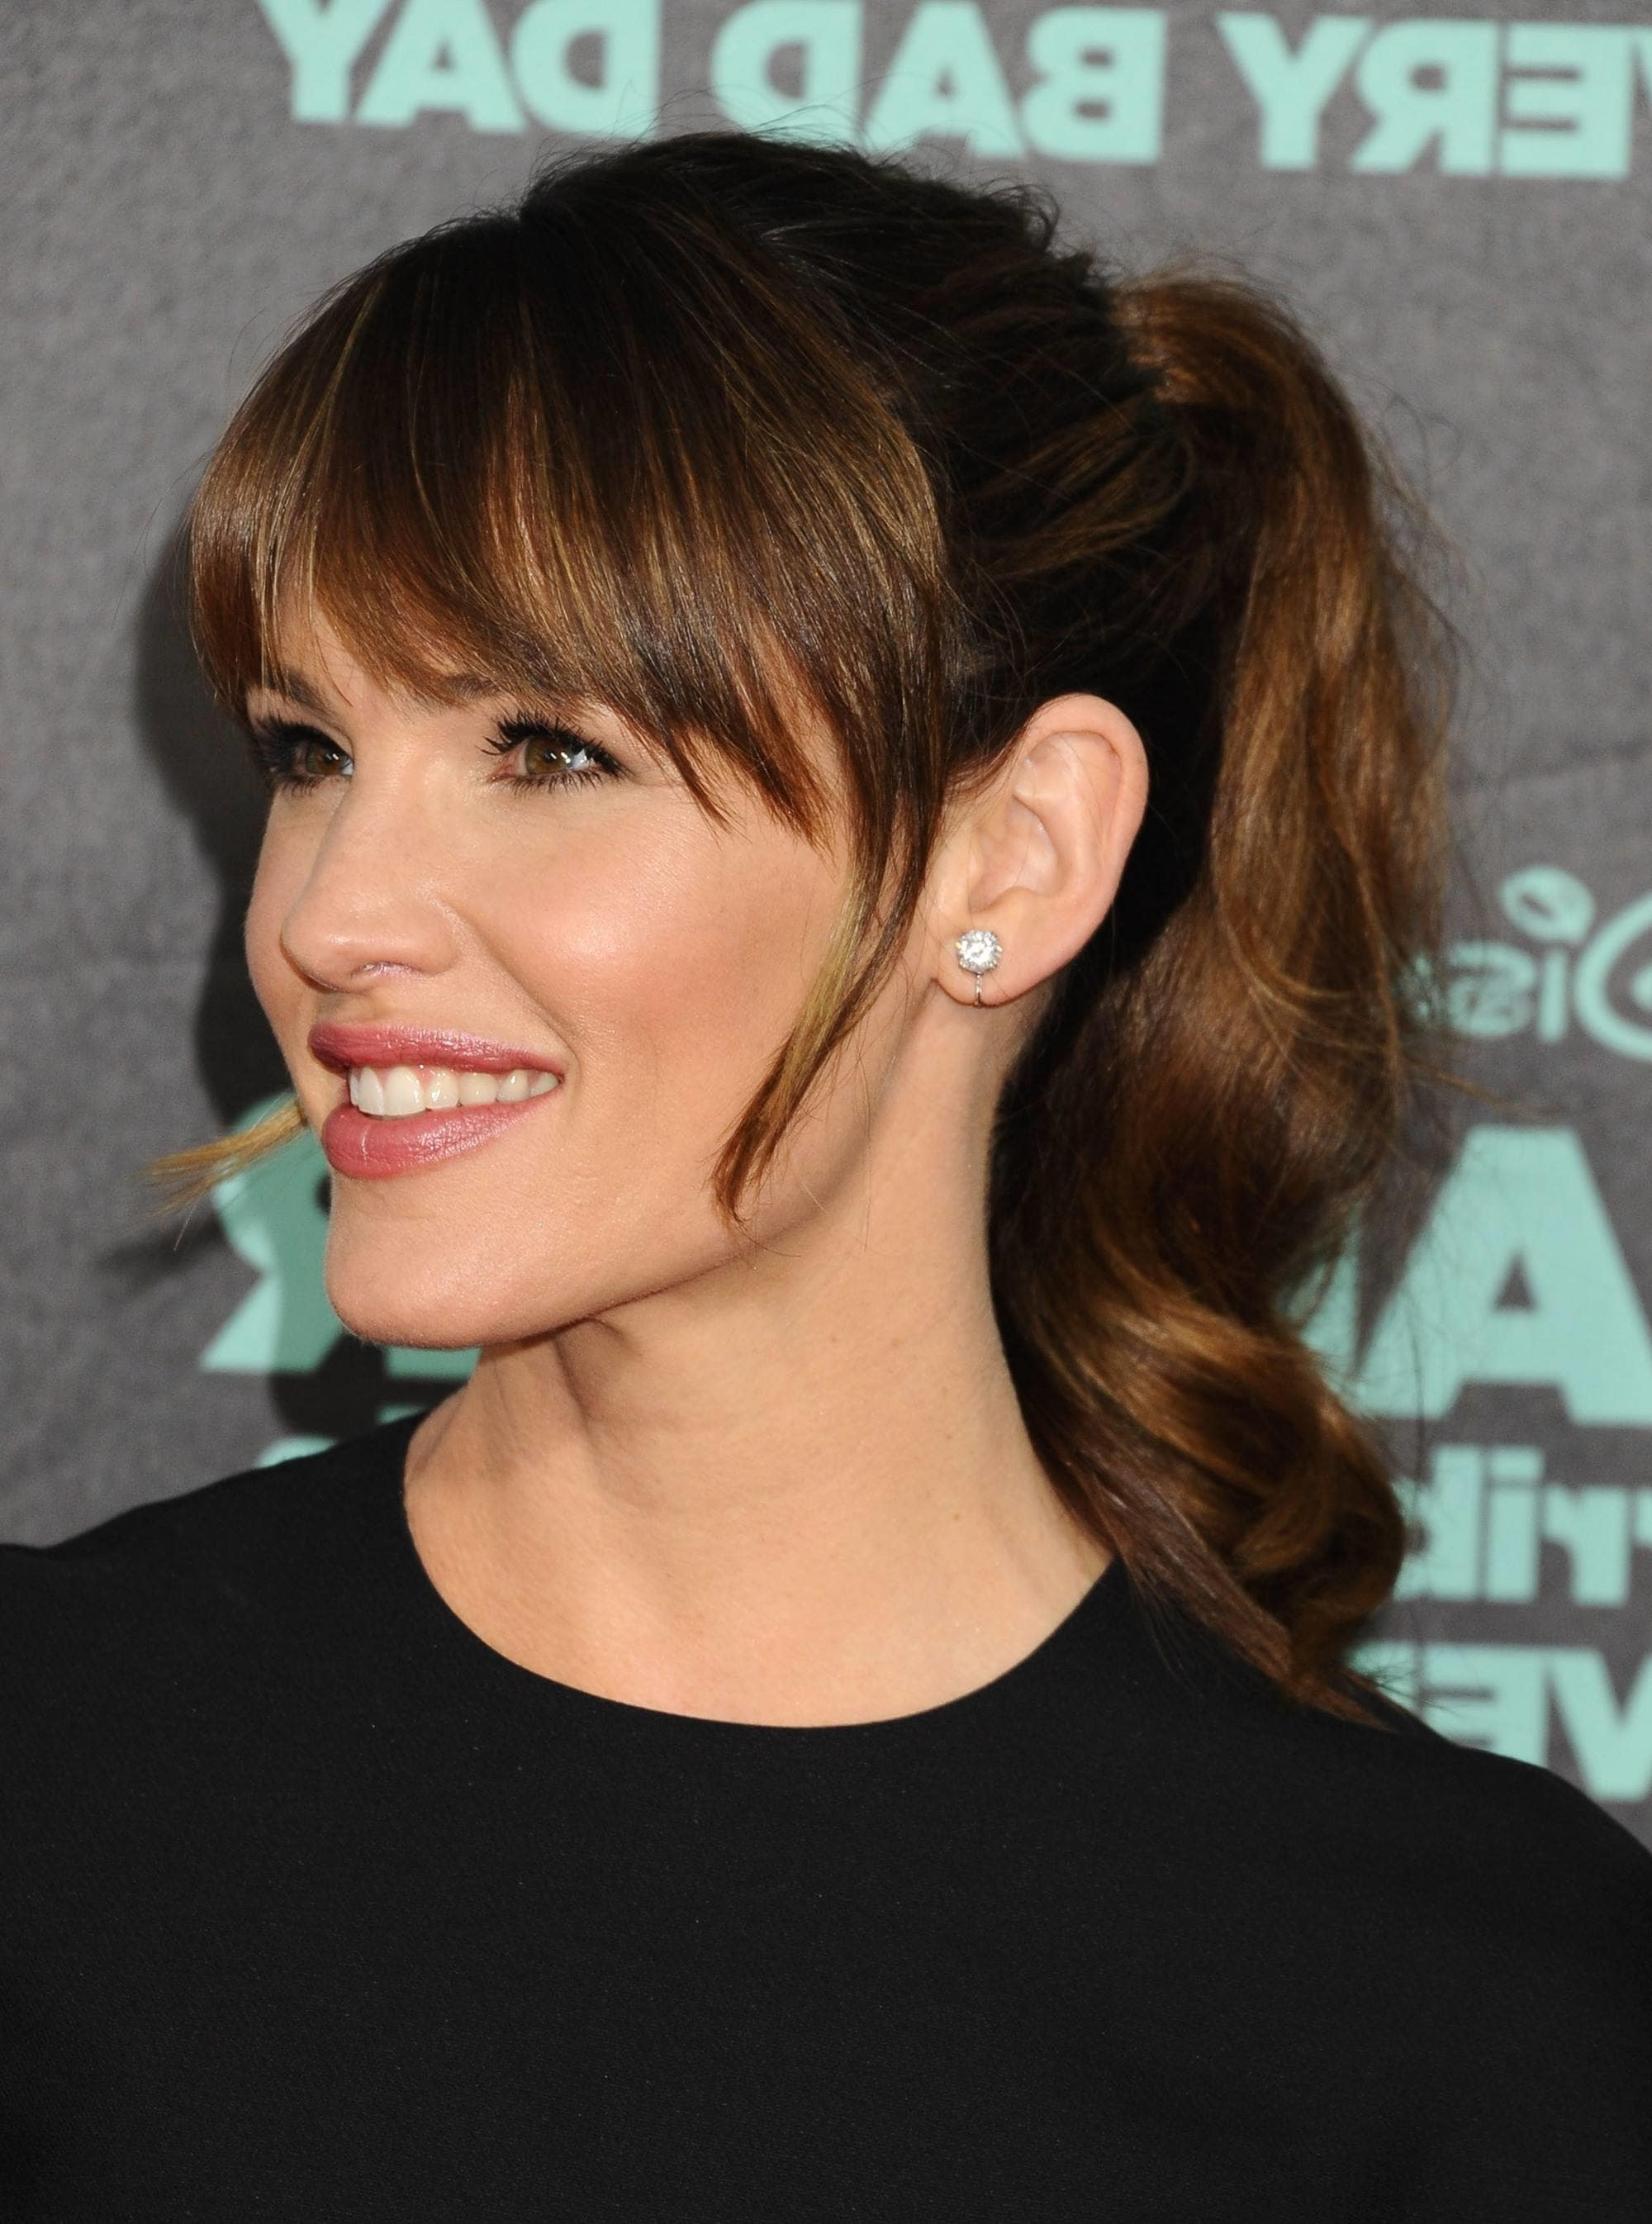 Ponytail With Bangs: 7 Fresh New Ways To Wear The Style Intended For Famous Side Bangs And Pony Hairstyles For Wavy Hair (View 14 of 20)